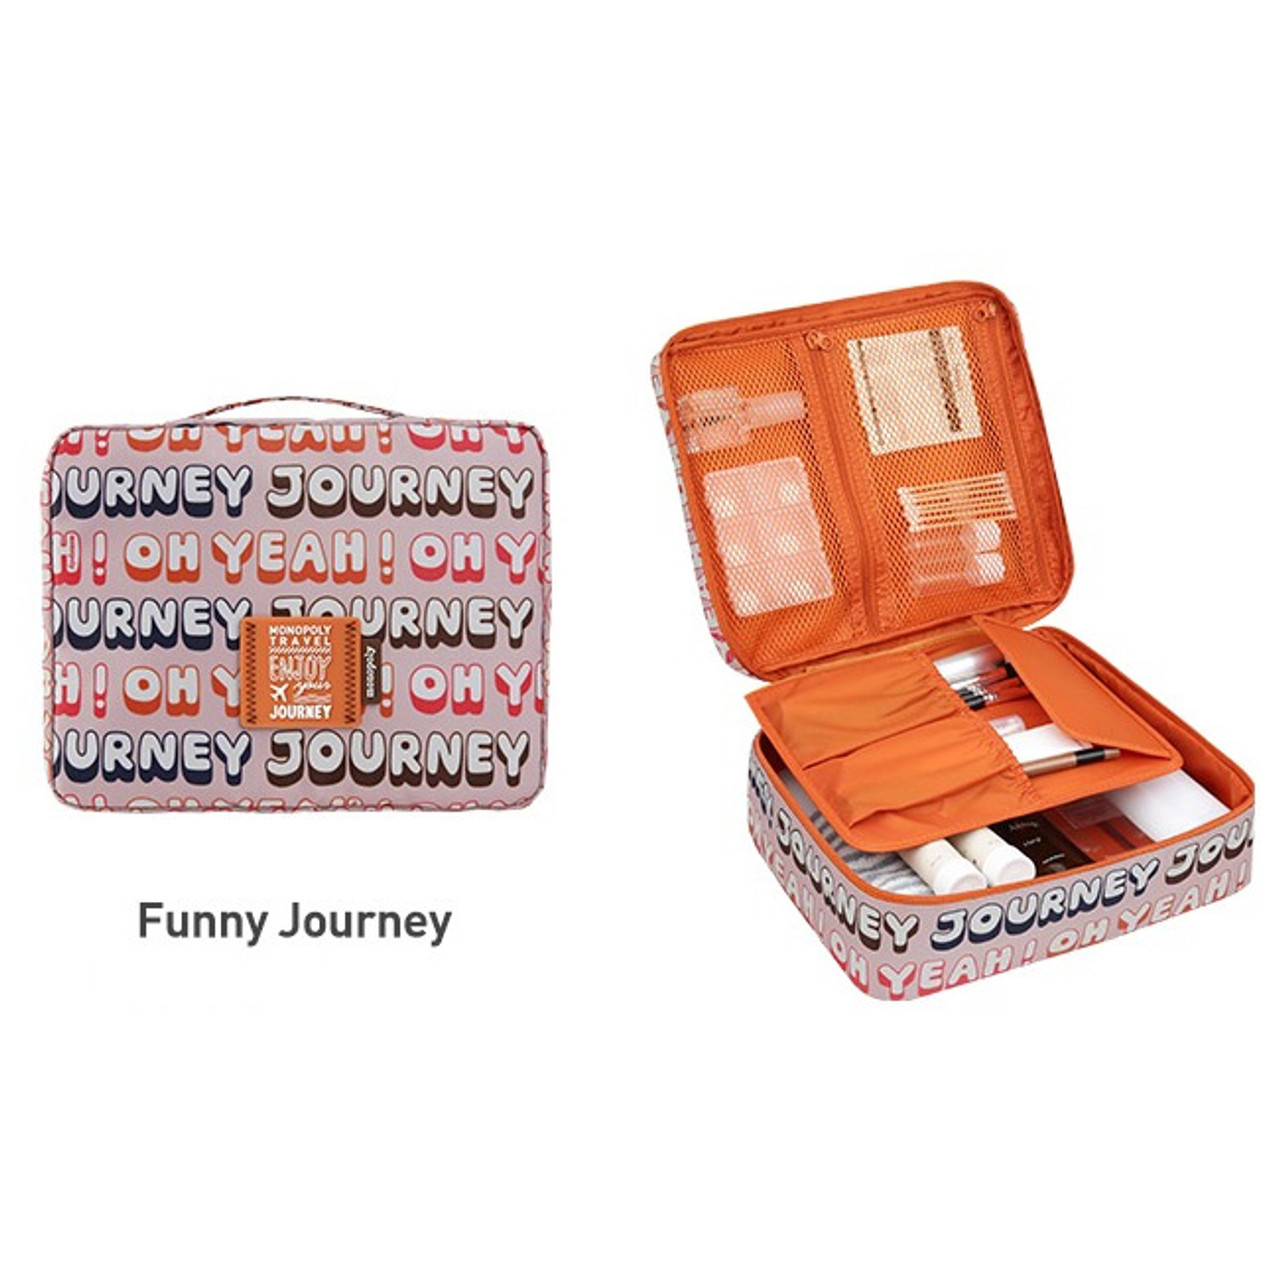 Funny journey - Monopoly Enjoy journey travel large multi pouch bag packing  organizer 59381ae1a850e